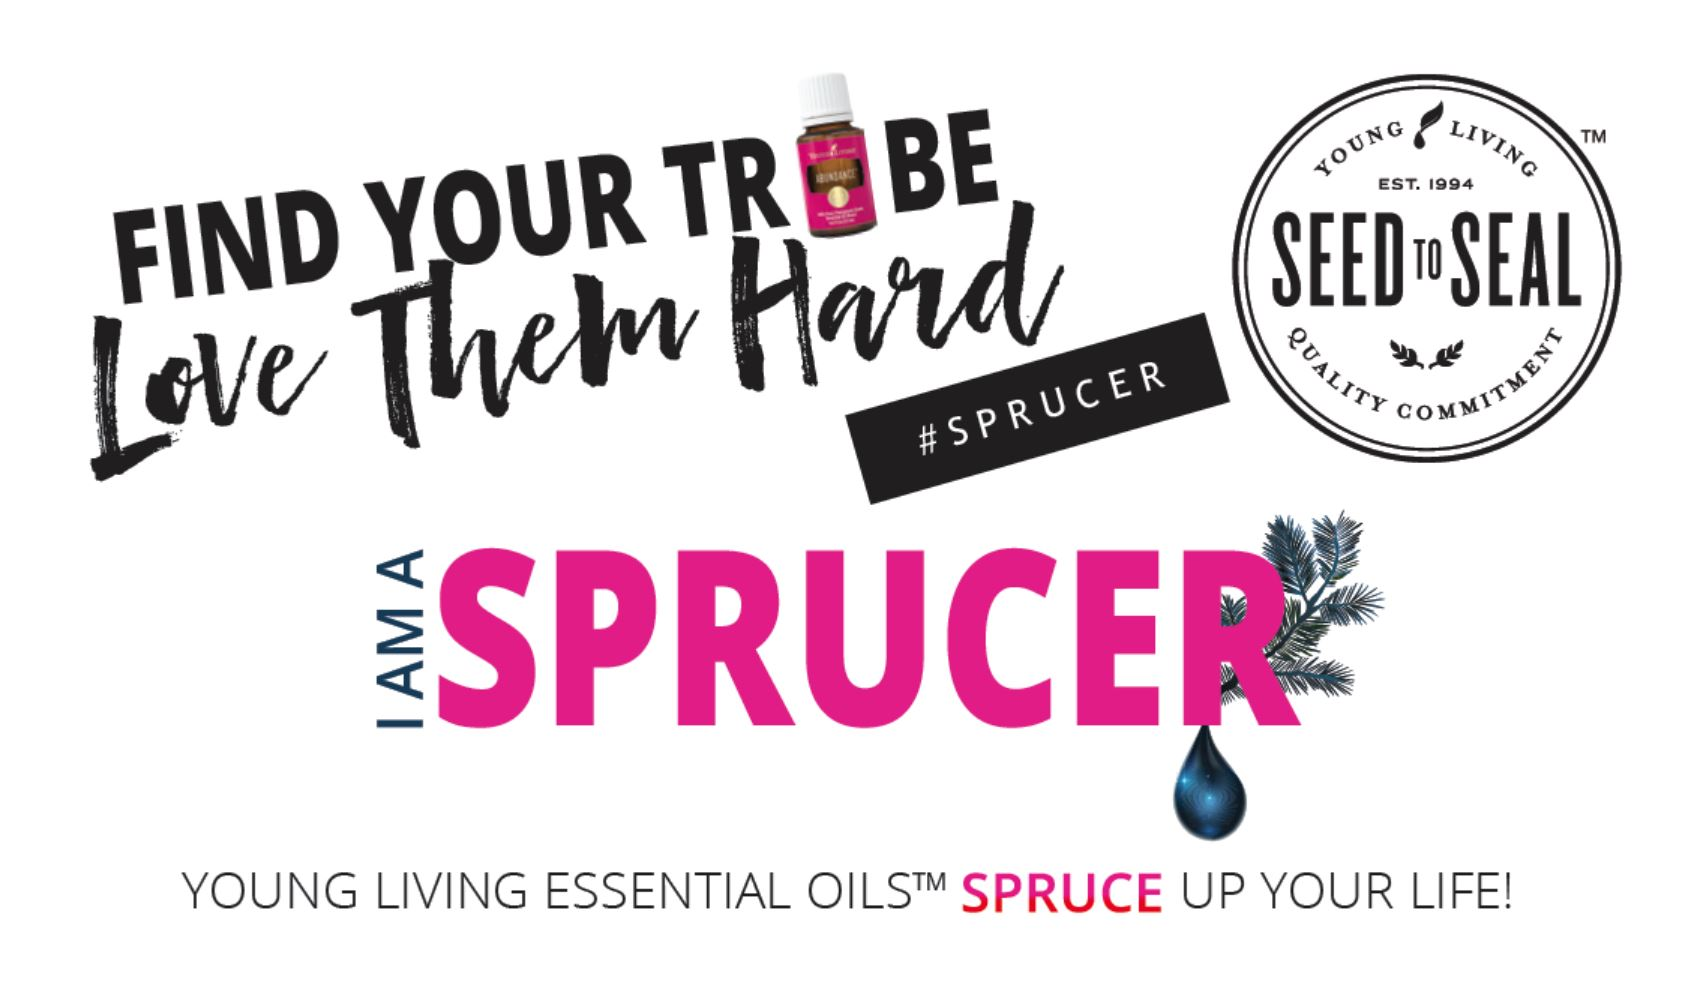 Find Your Tribe and Love them Hard Sprucer Young Living Essential Oils Seed to Seal #Sprucer